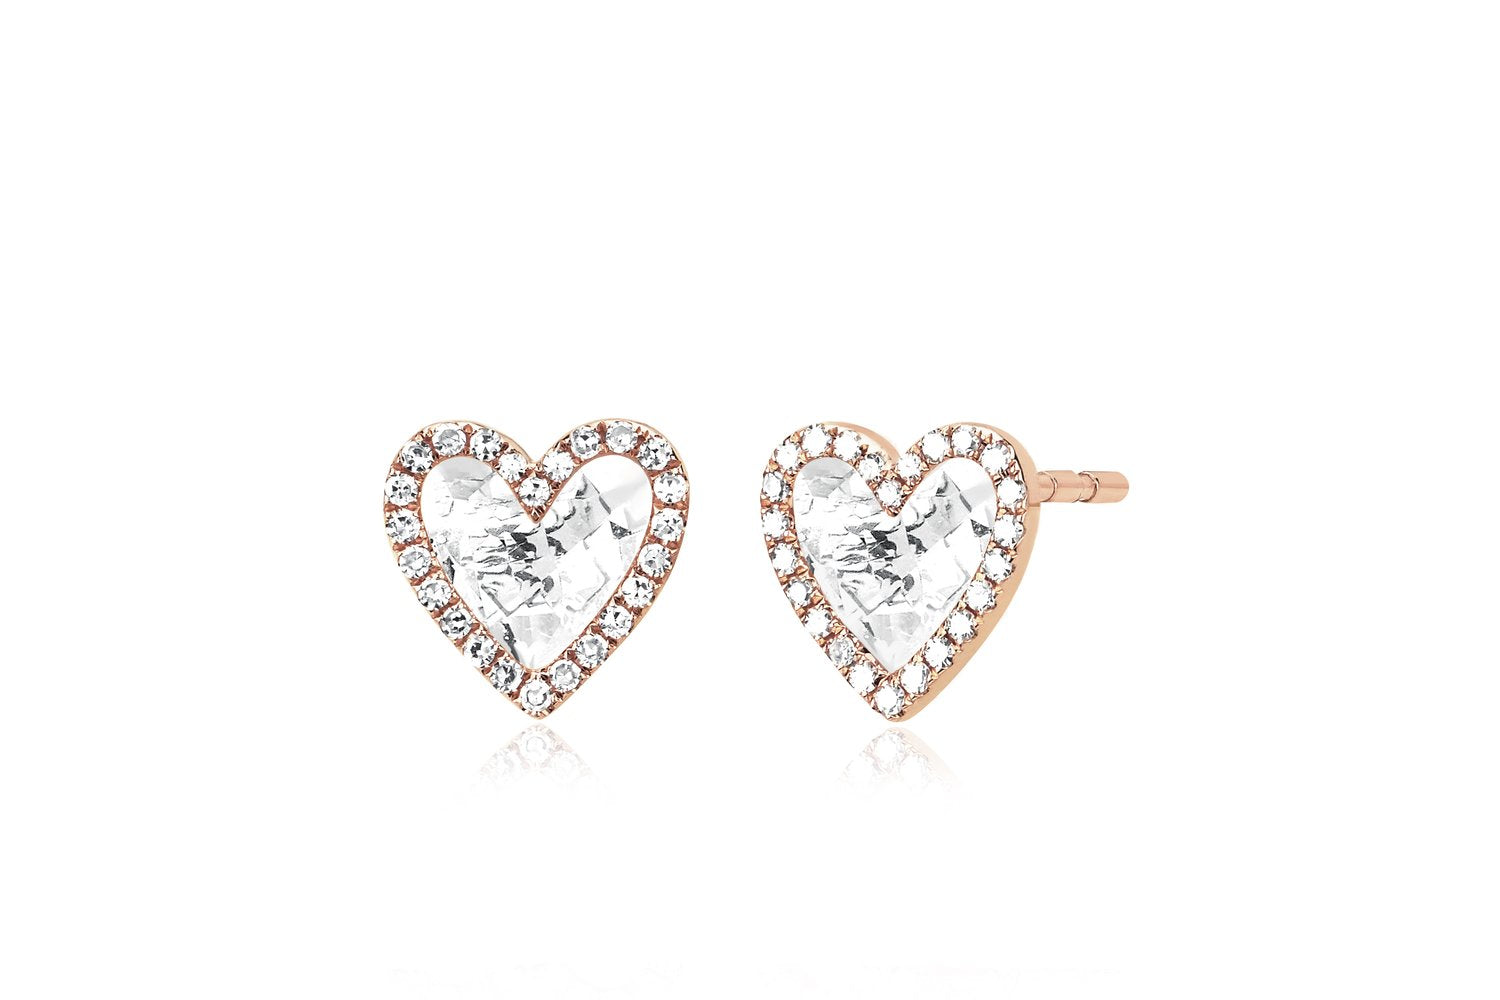 Diamond & White Topaz Heart Stud Earrings